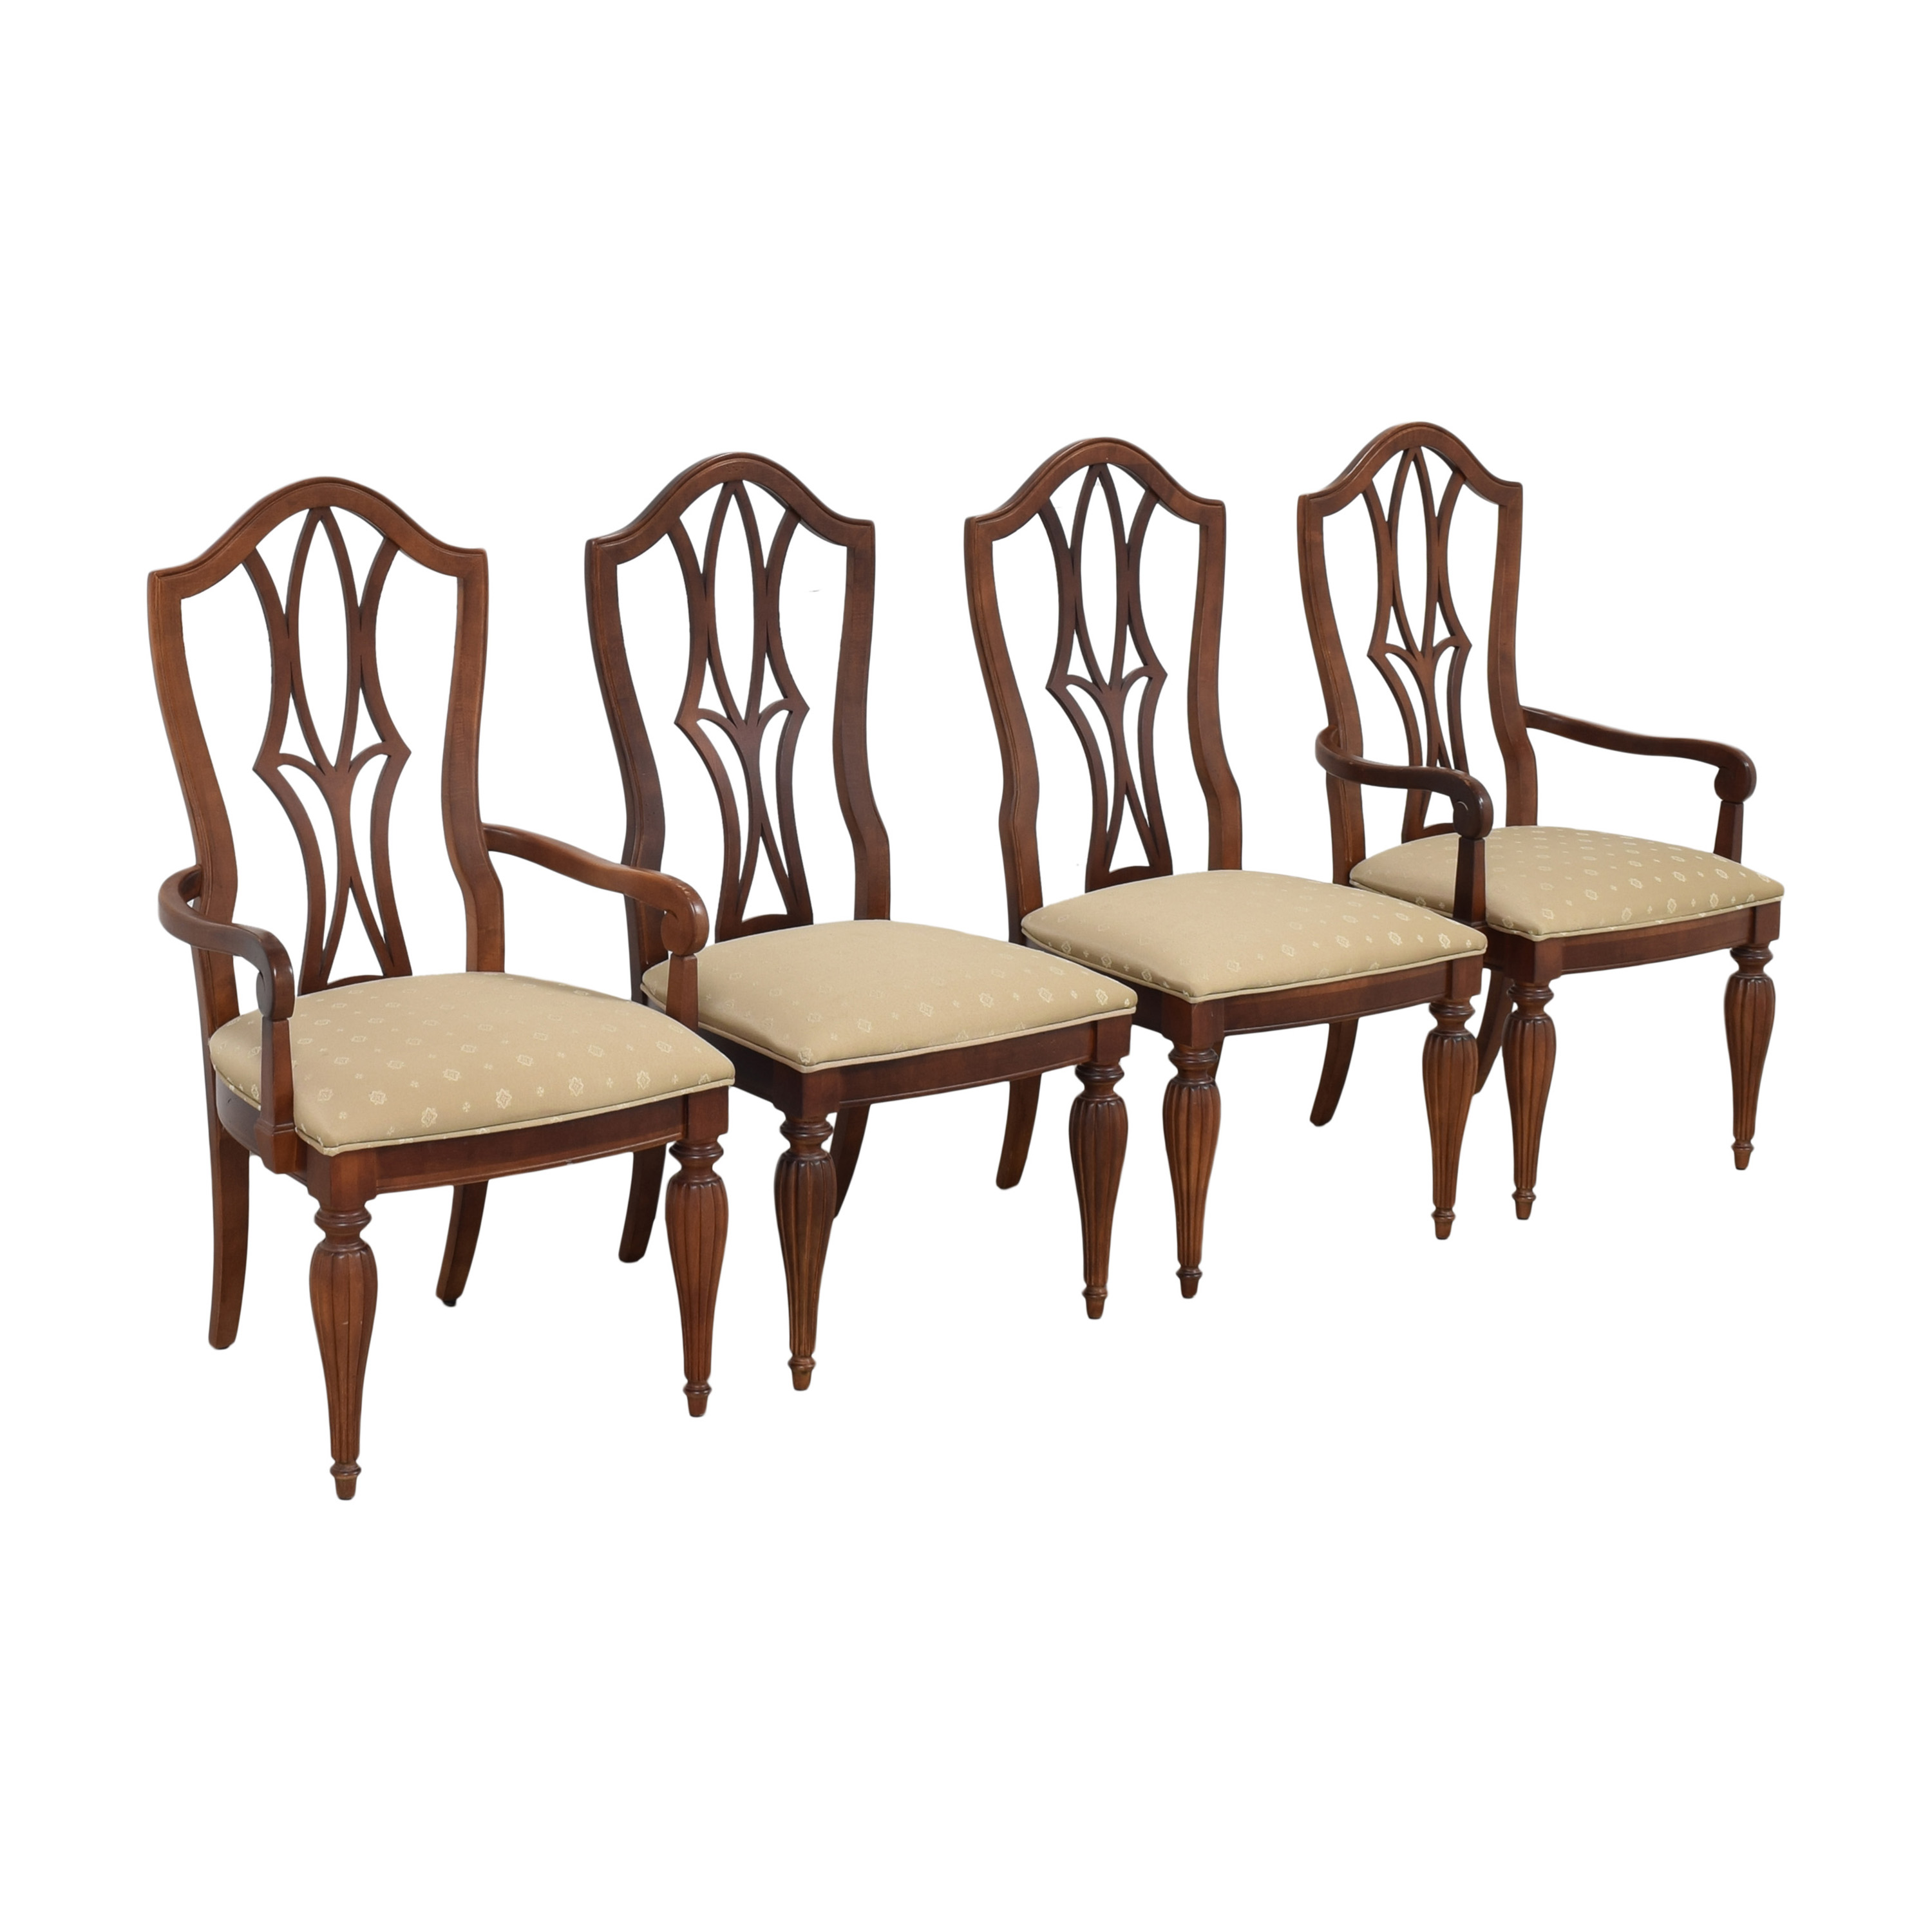 Stanley Furniture Stanley Furniture Upholstered Dining Chairs ct